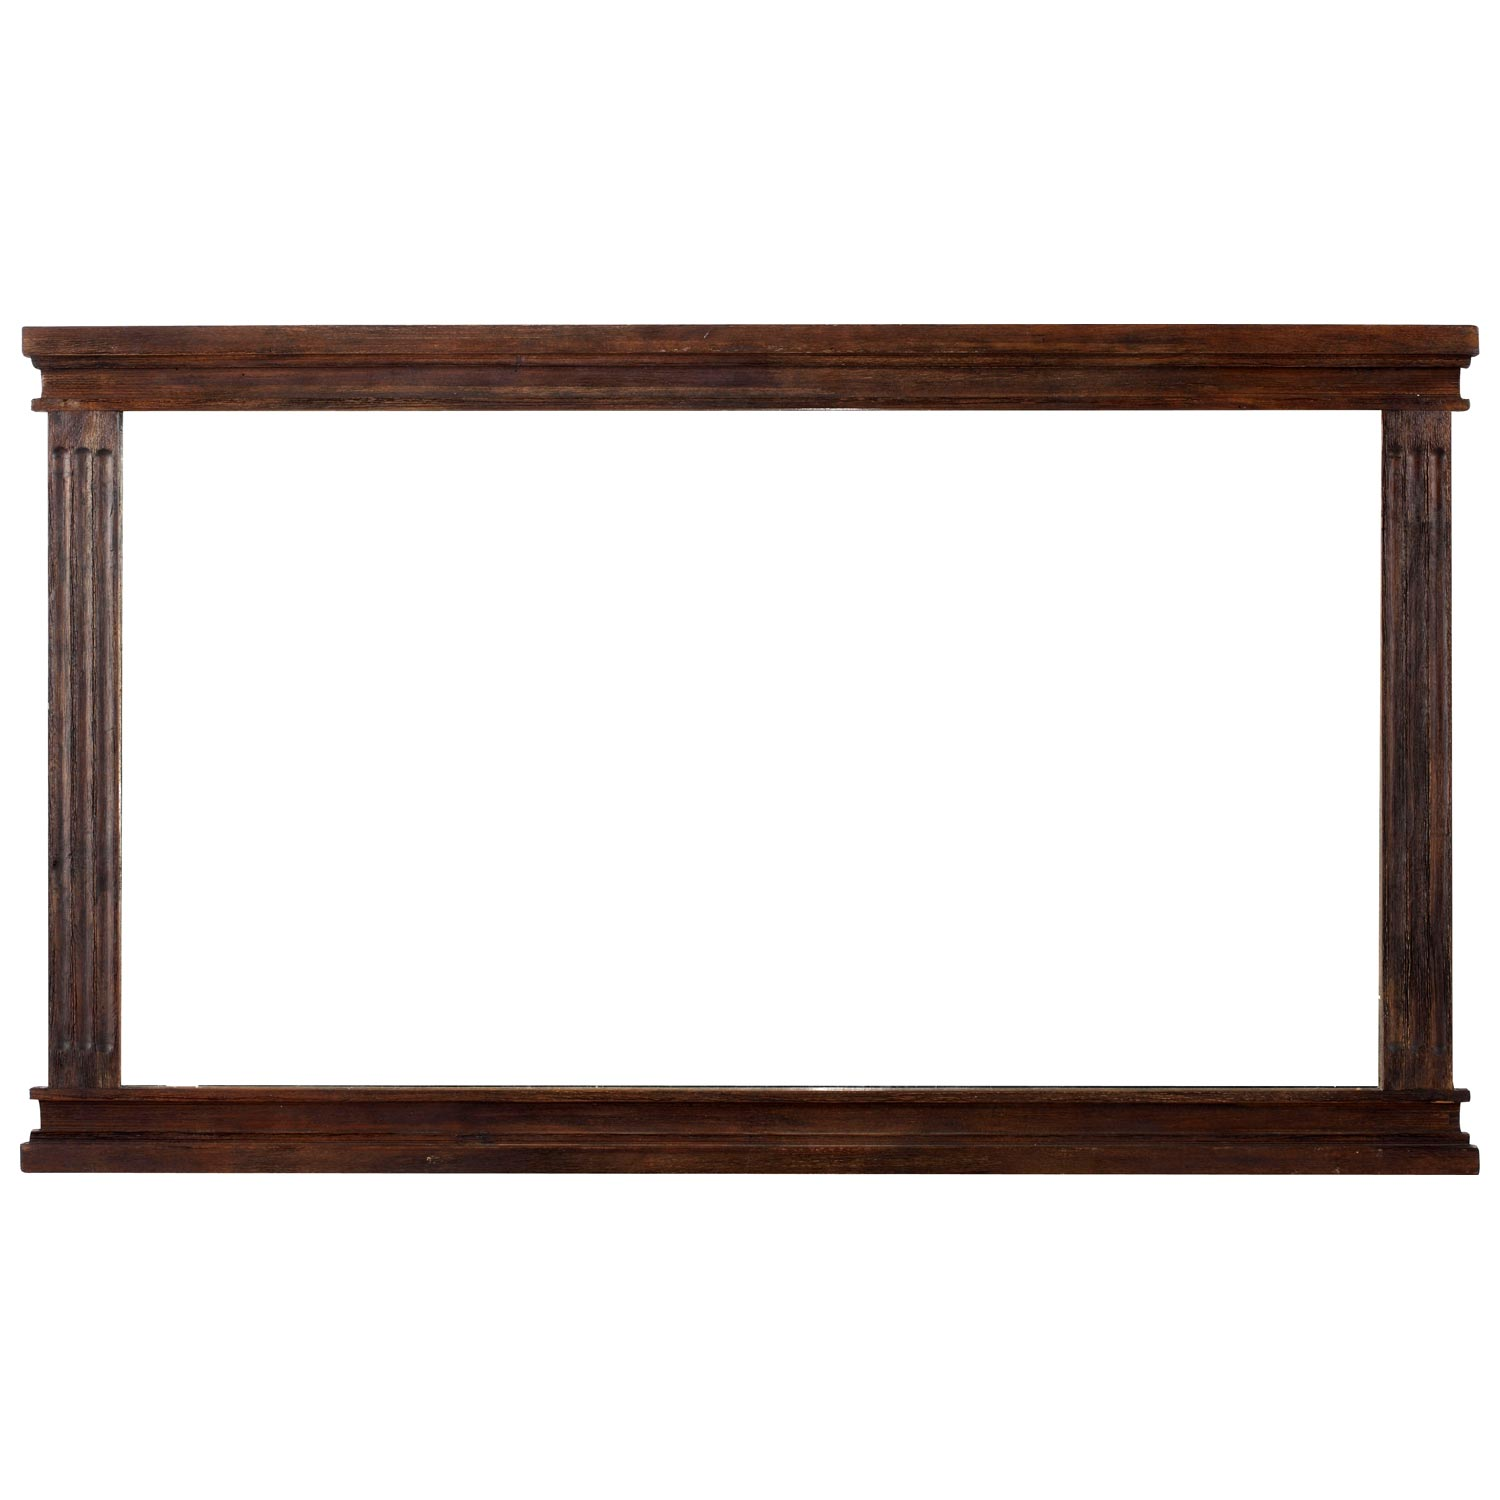 The City Landscape Mirror - Dark Brown Wood Frame